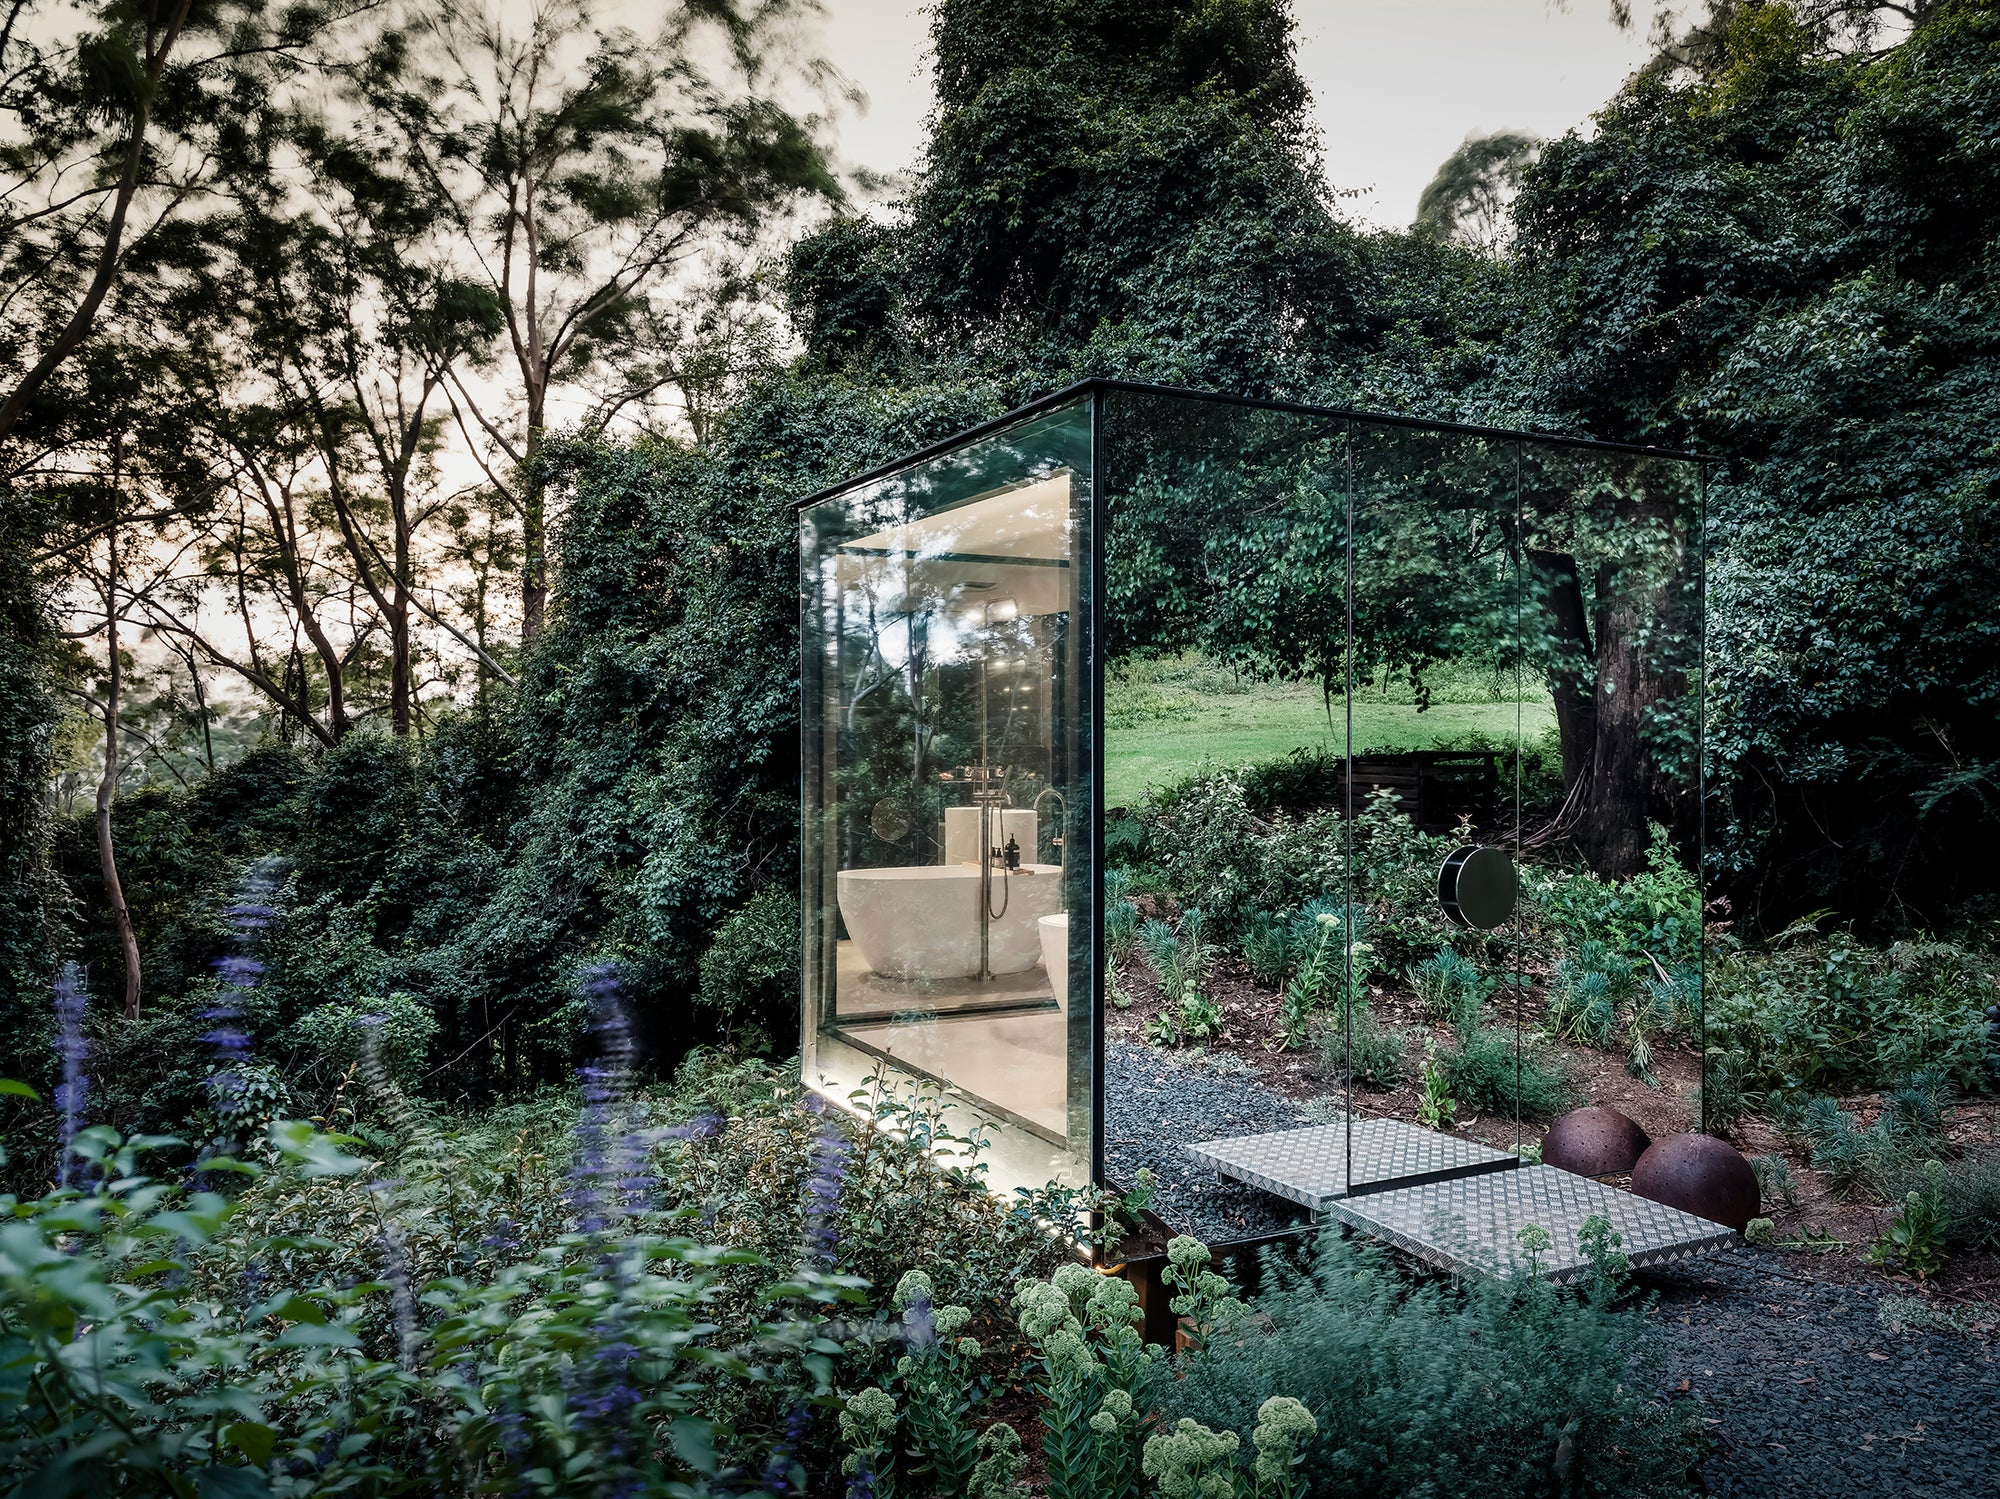 Minimal Forest: A Mirrored Bathroom in the Wild